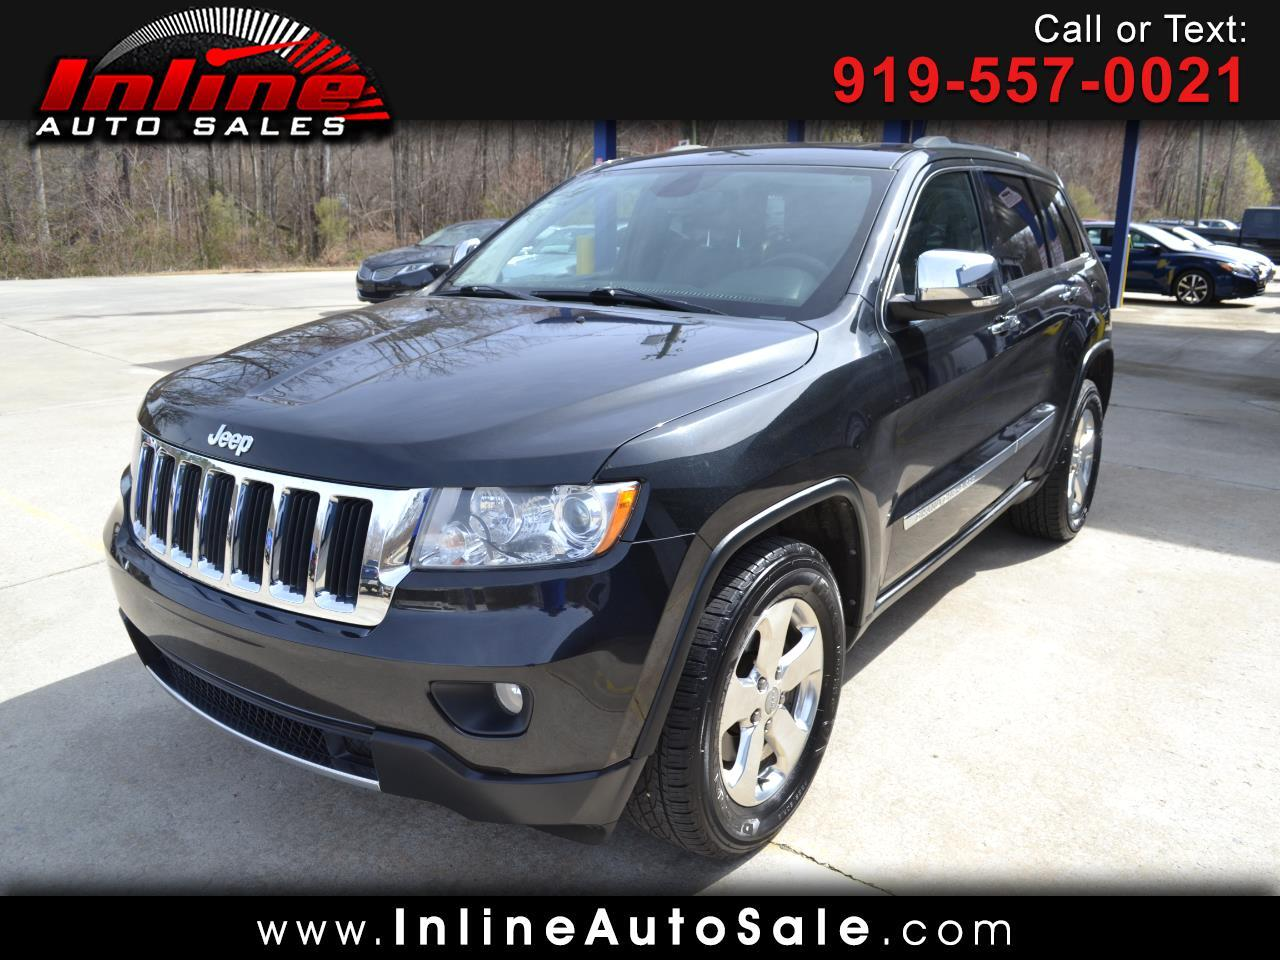 2013 Jeep Grand Cherokee RWD 4dr Limited